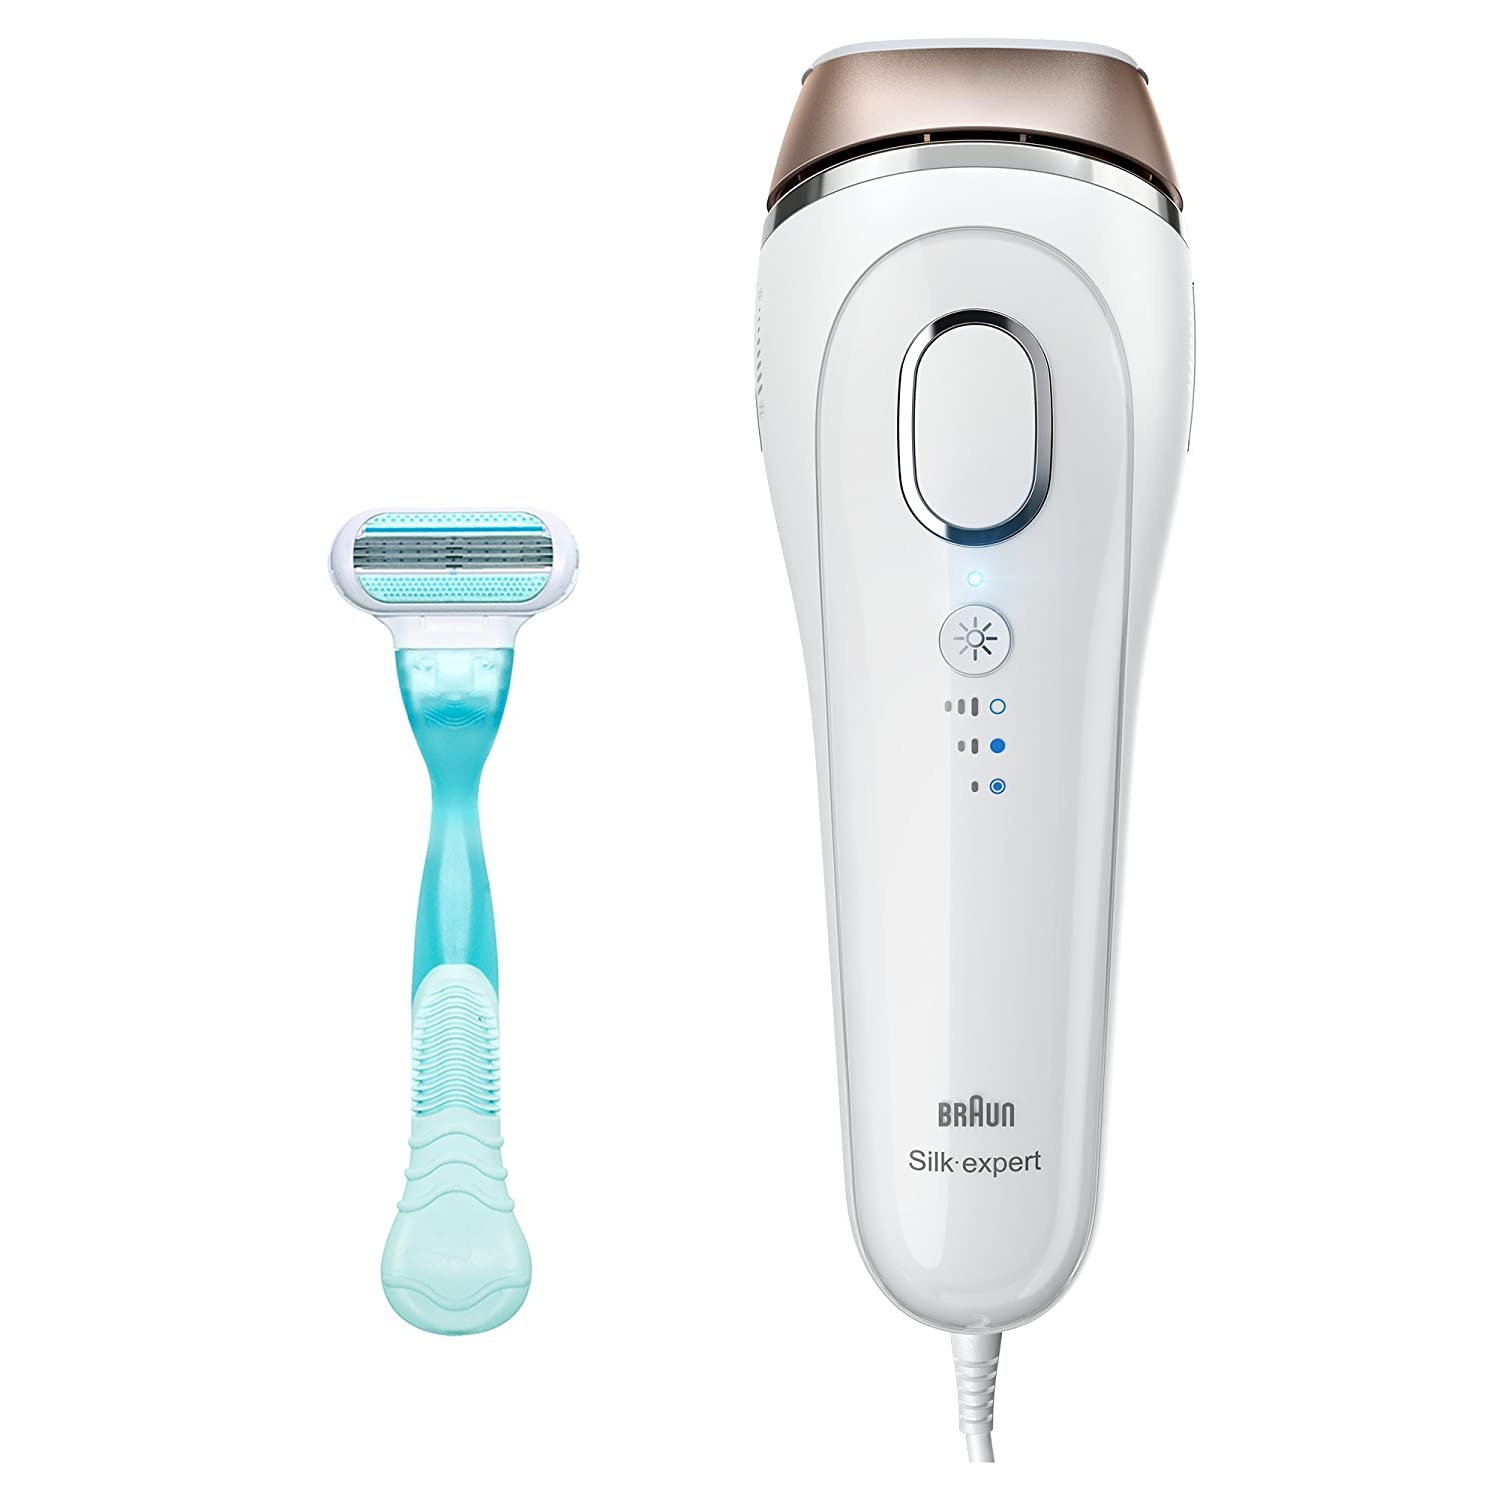 Braun Silk-Expert IPL BD 5001 Intense Pulsed Light, 300,000 Flashes, Face & Body Hair Removal System with Razor